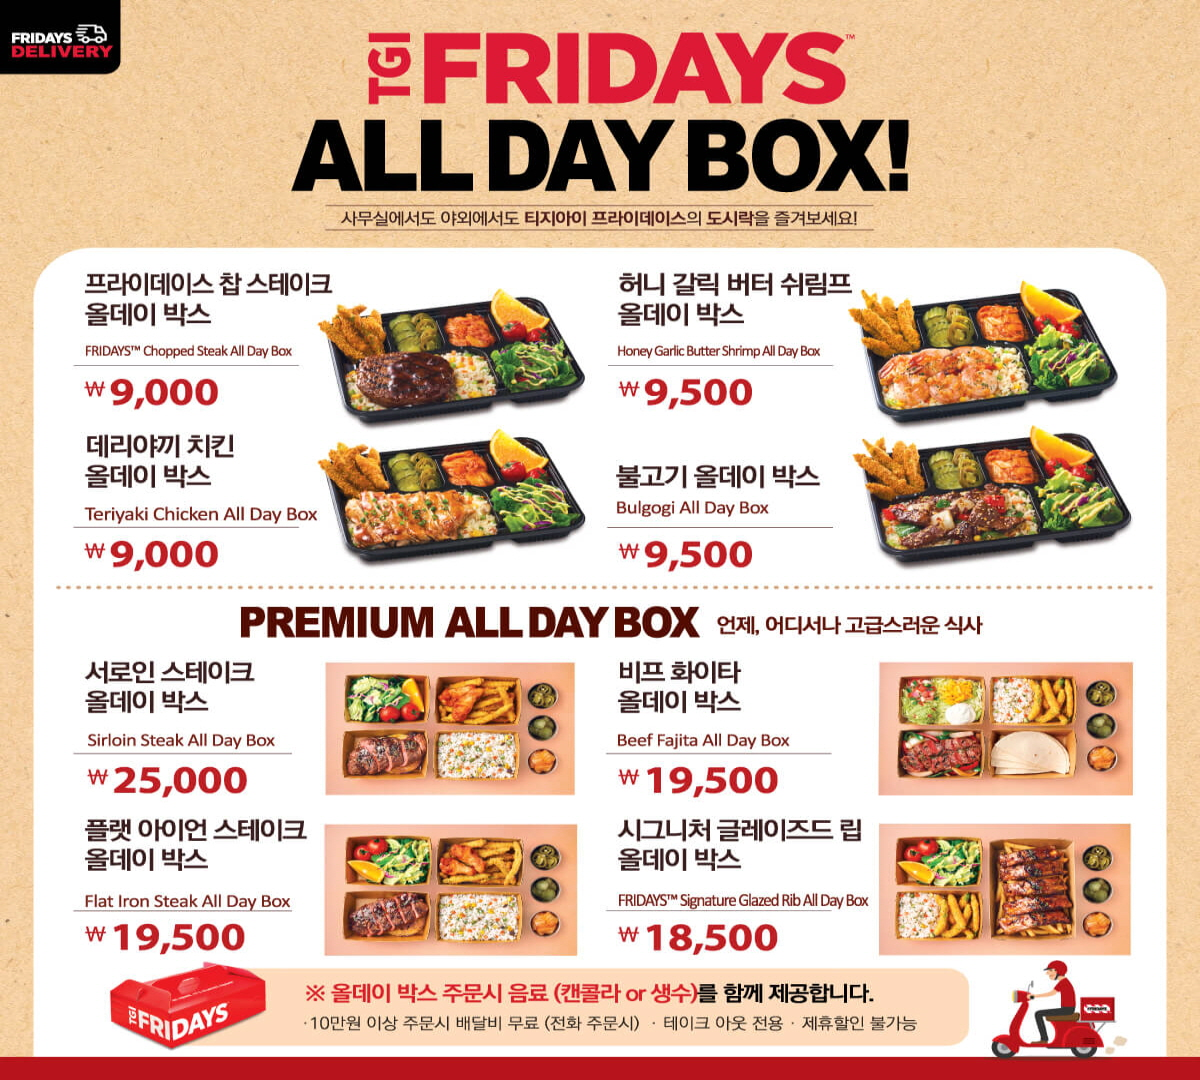 TGIF ALL DAY BOX